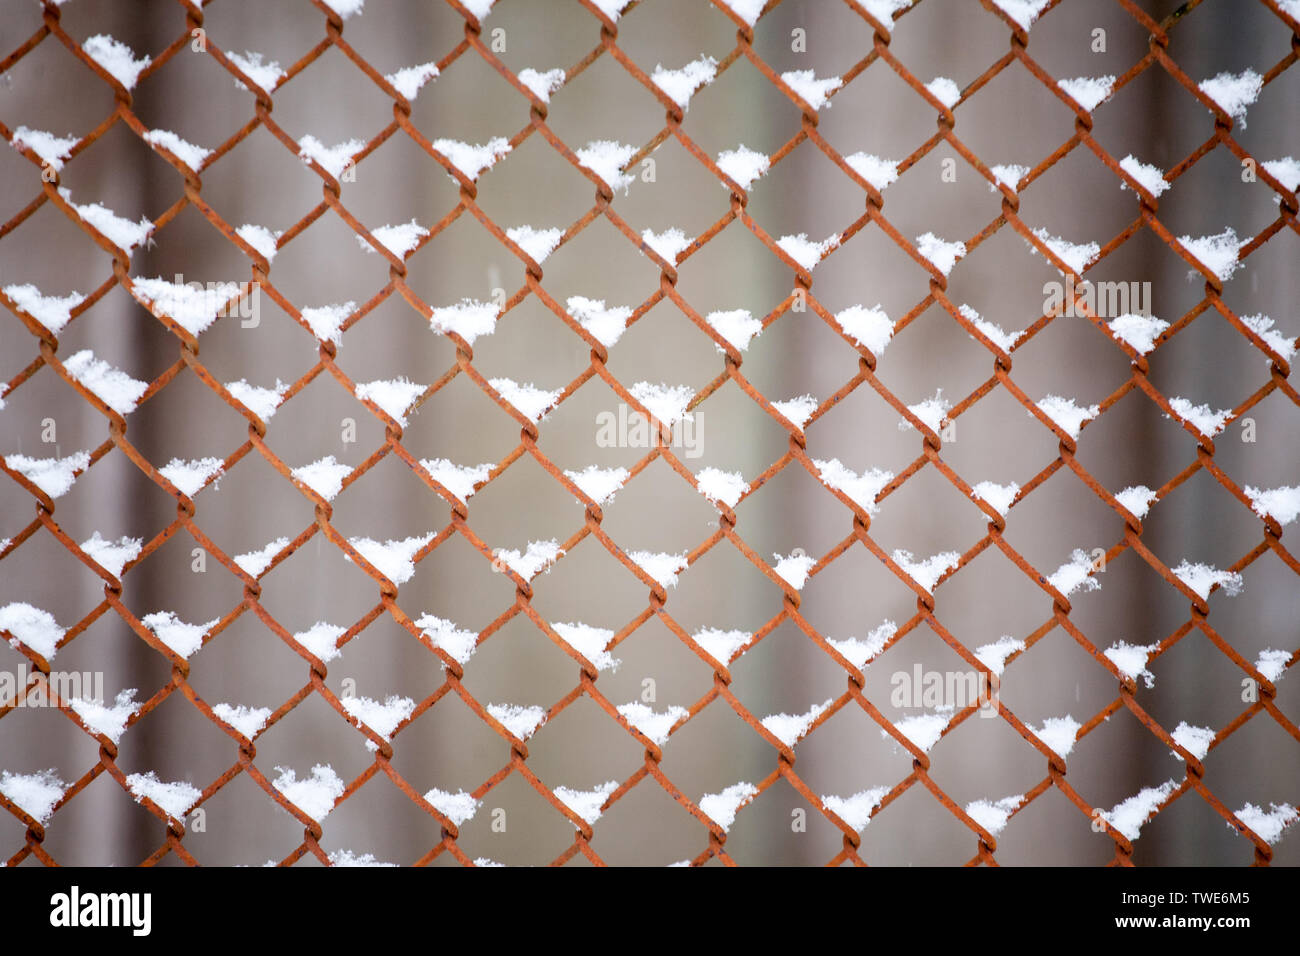 old metal fence grid pattern closeup with snow cover Stock Photo